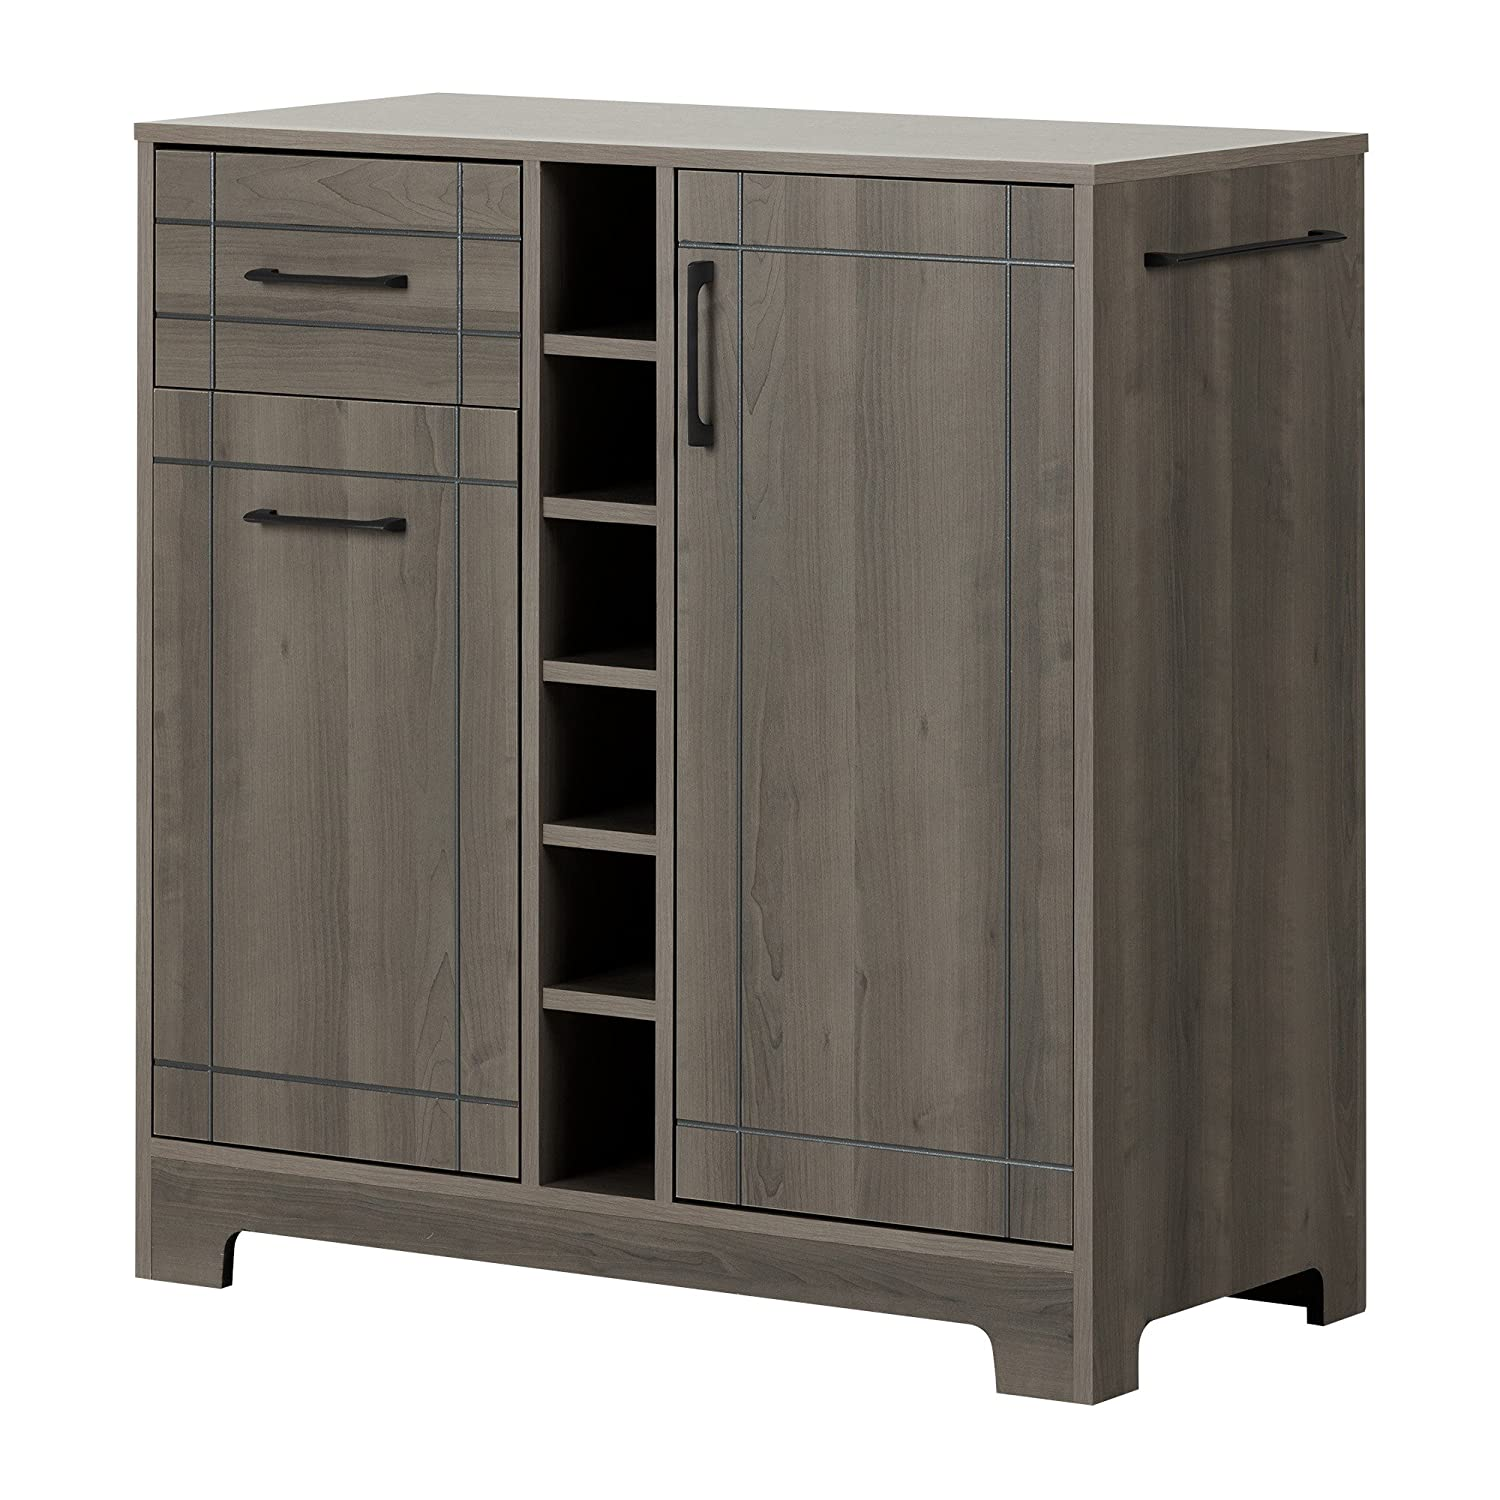 South Shore Furniture Vietti Bar Cabinet with Bottle and Glass Storage, Black Oak 9043770